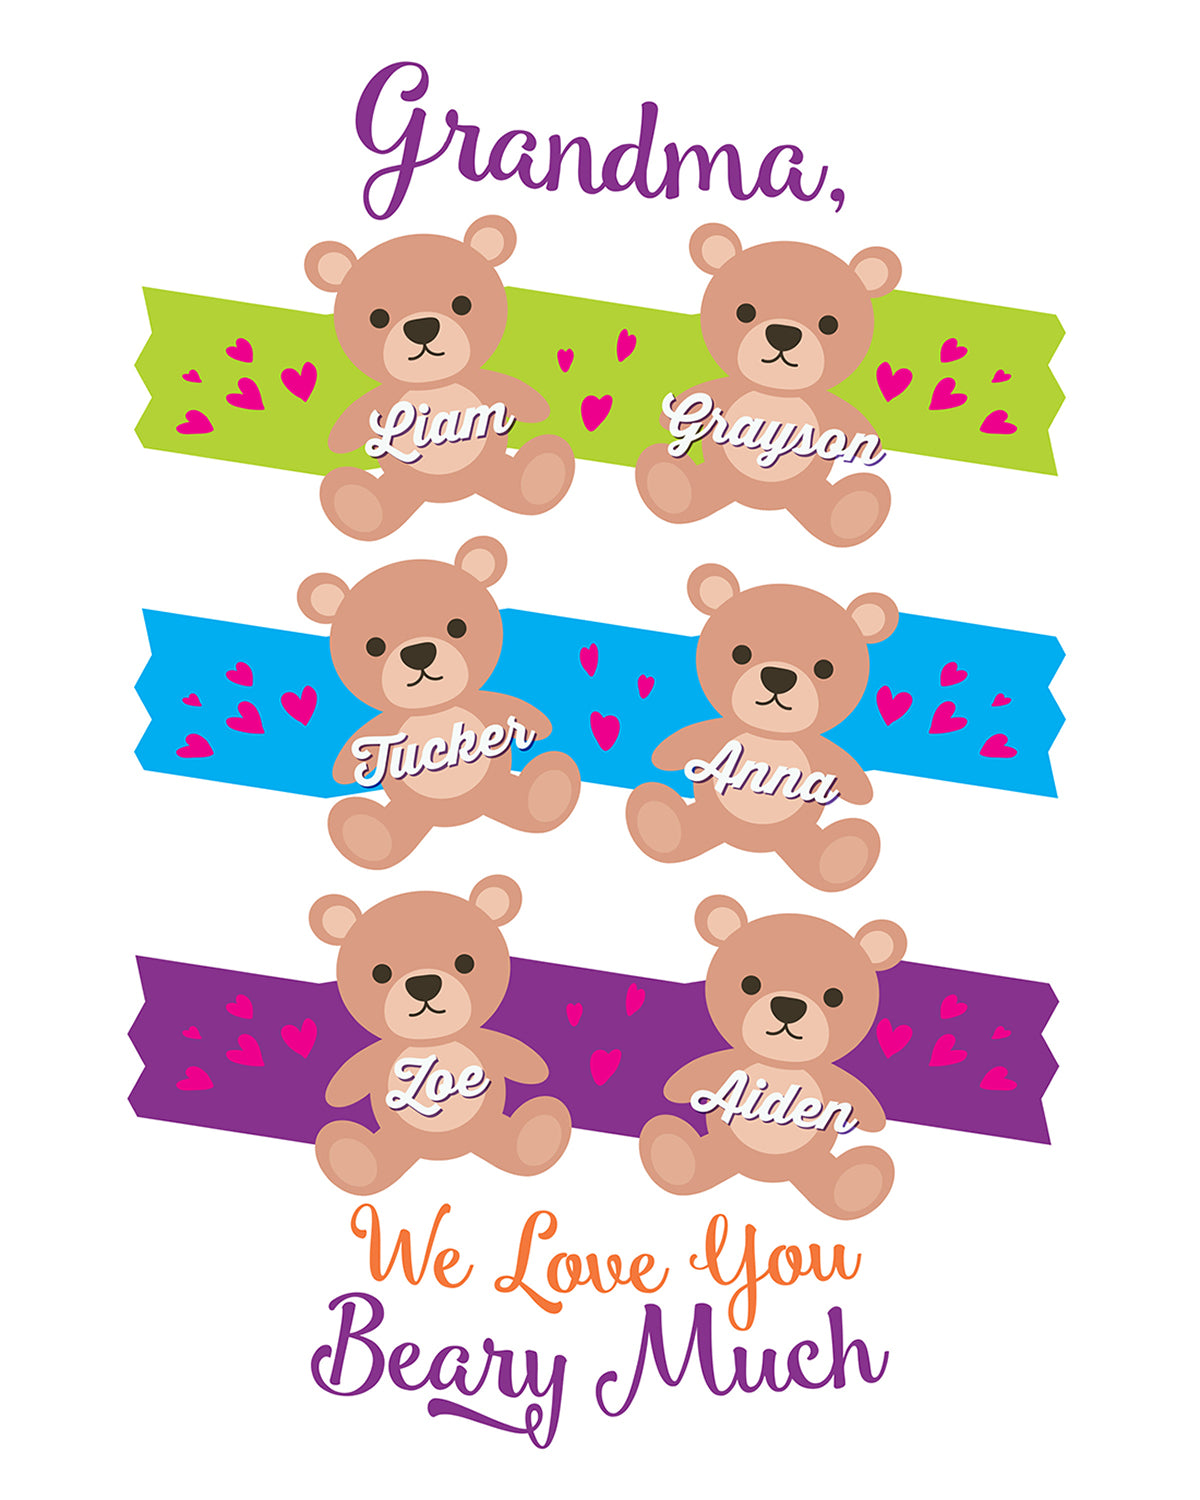 Grandma, We Love You Beary Much - Customizable Wall Decor Art - Print, Poster & Canvas Sizes - Perfect Mother's day gift for grandmothers